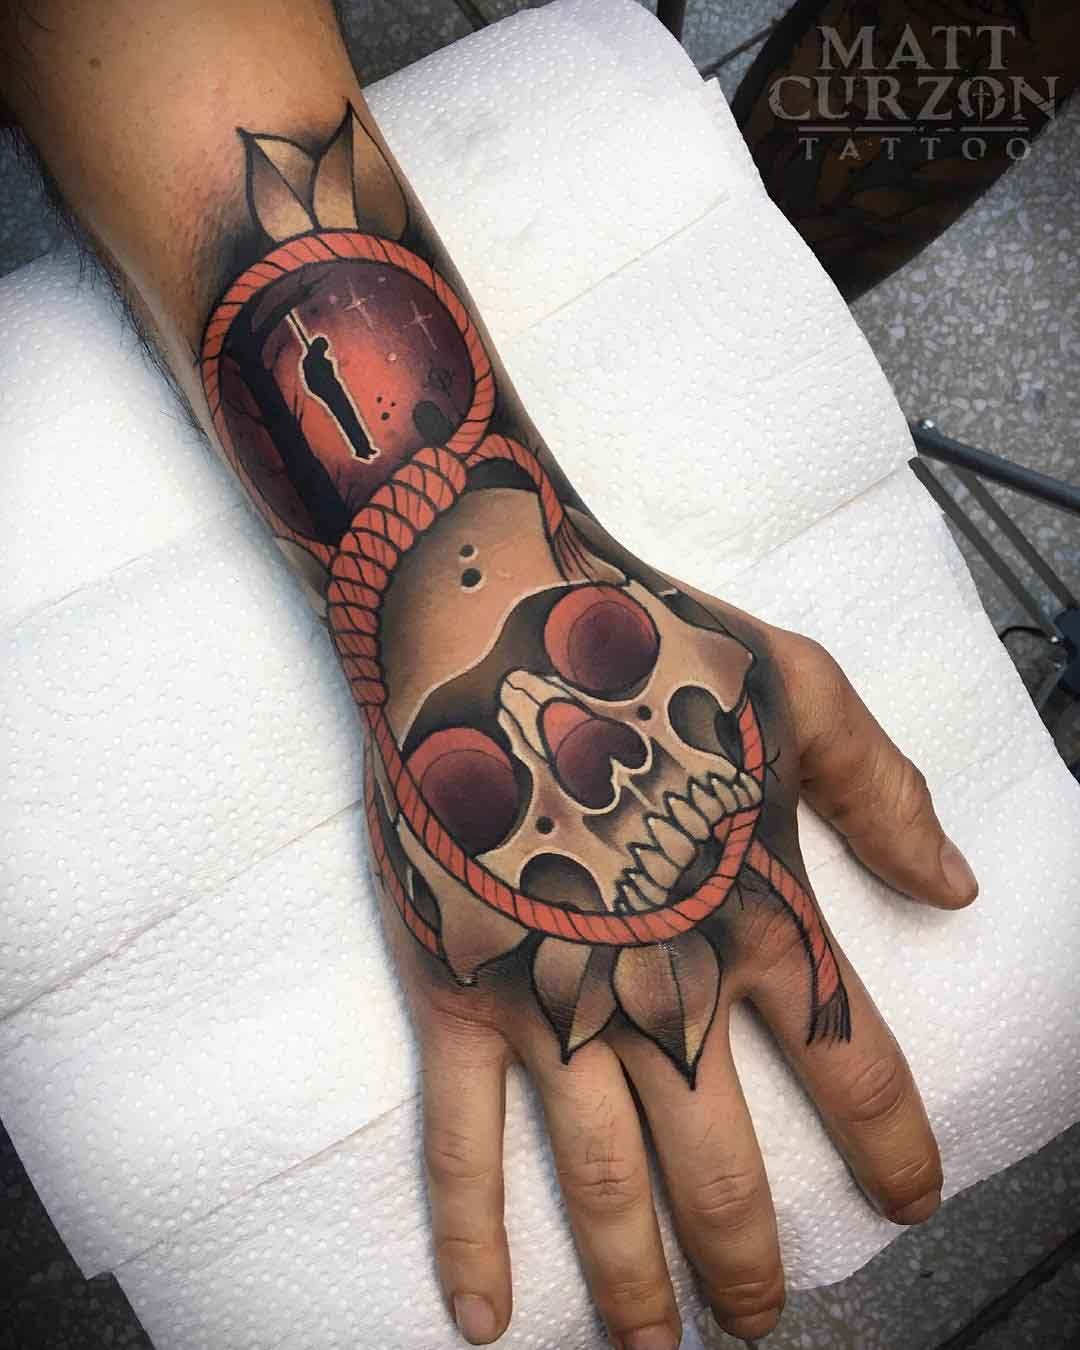 skull tattoo on hand with rope and hanged man